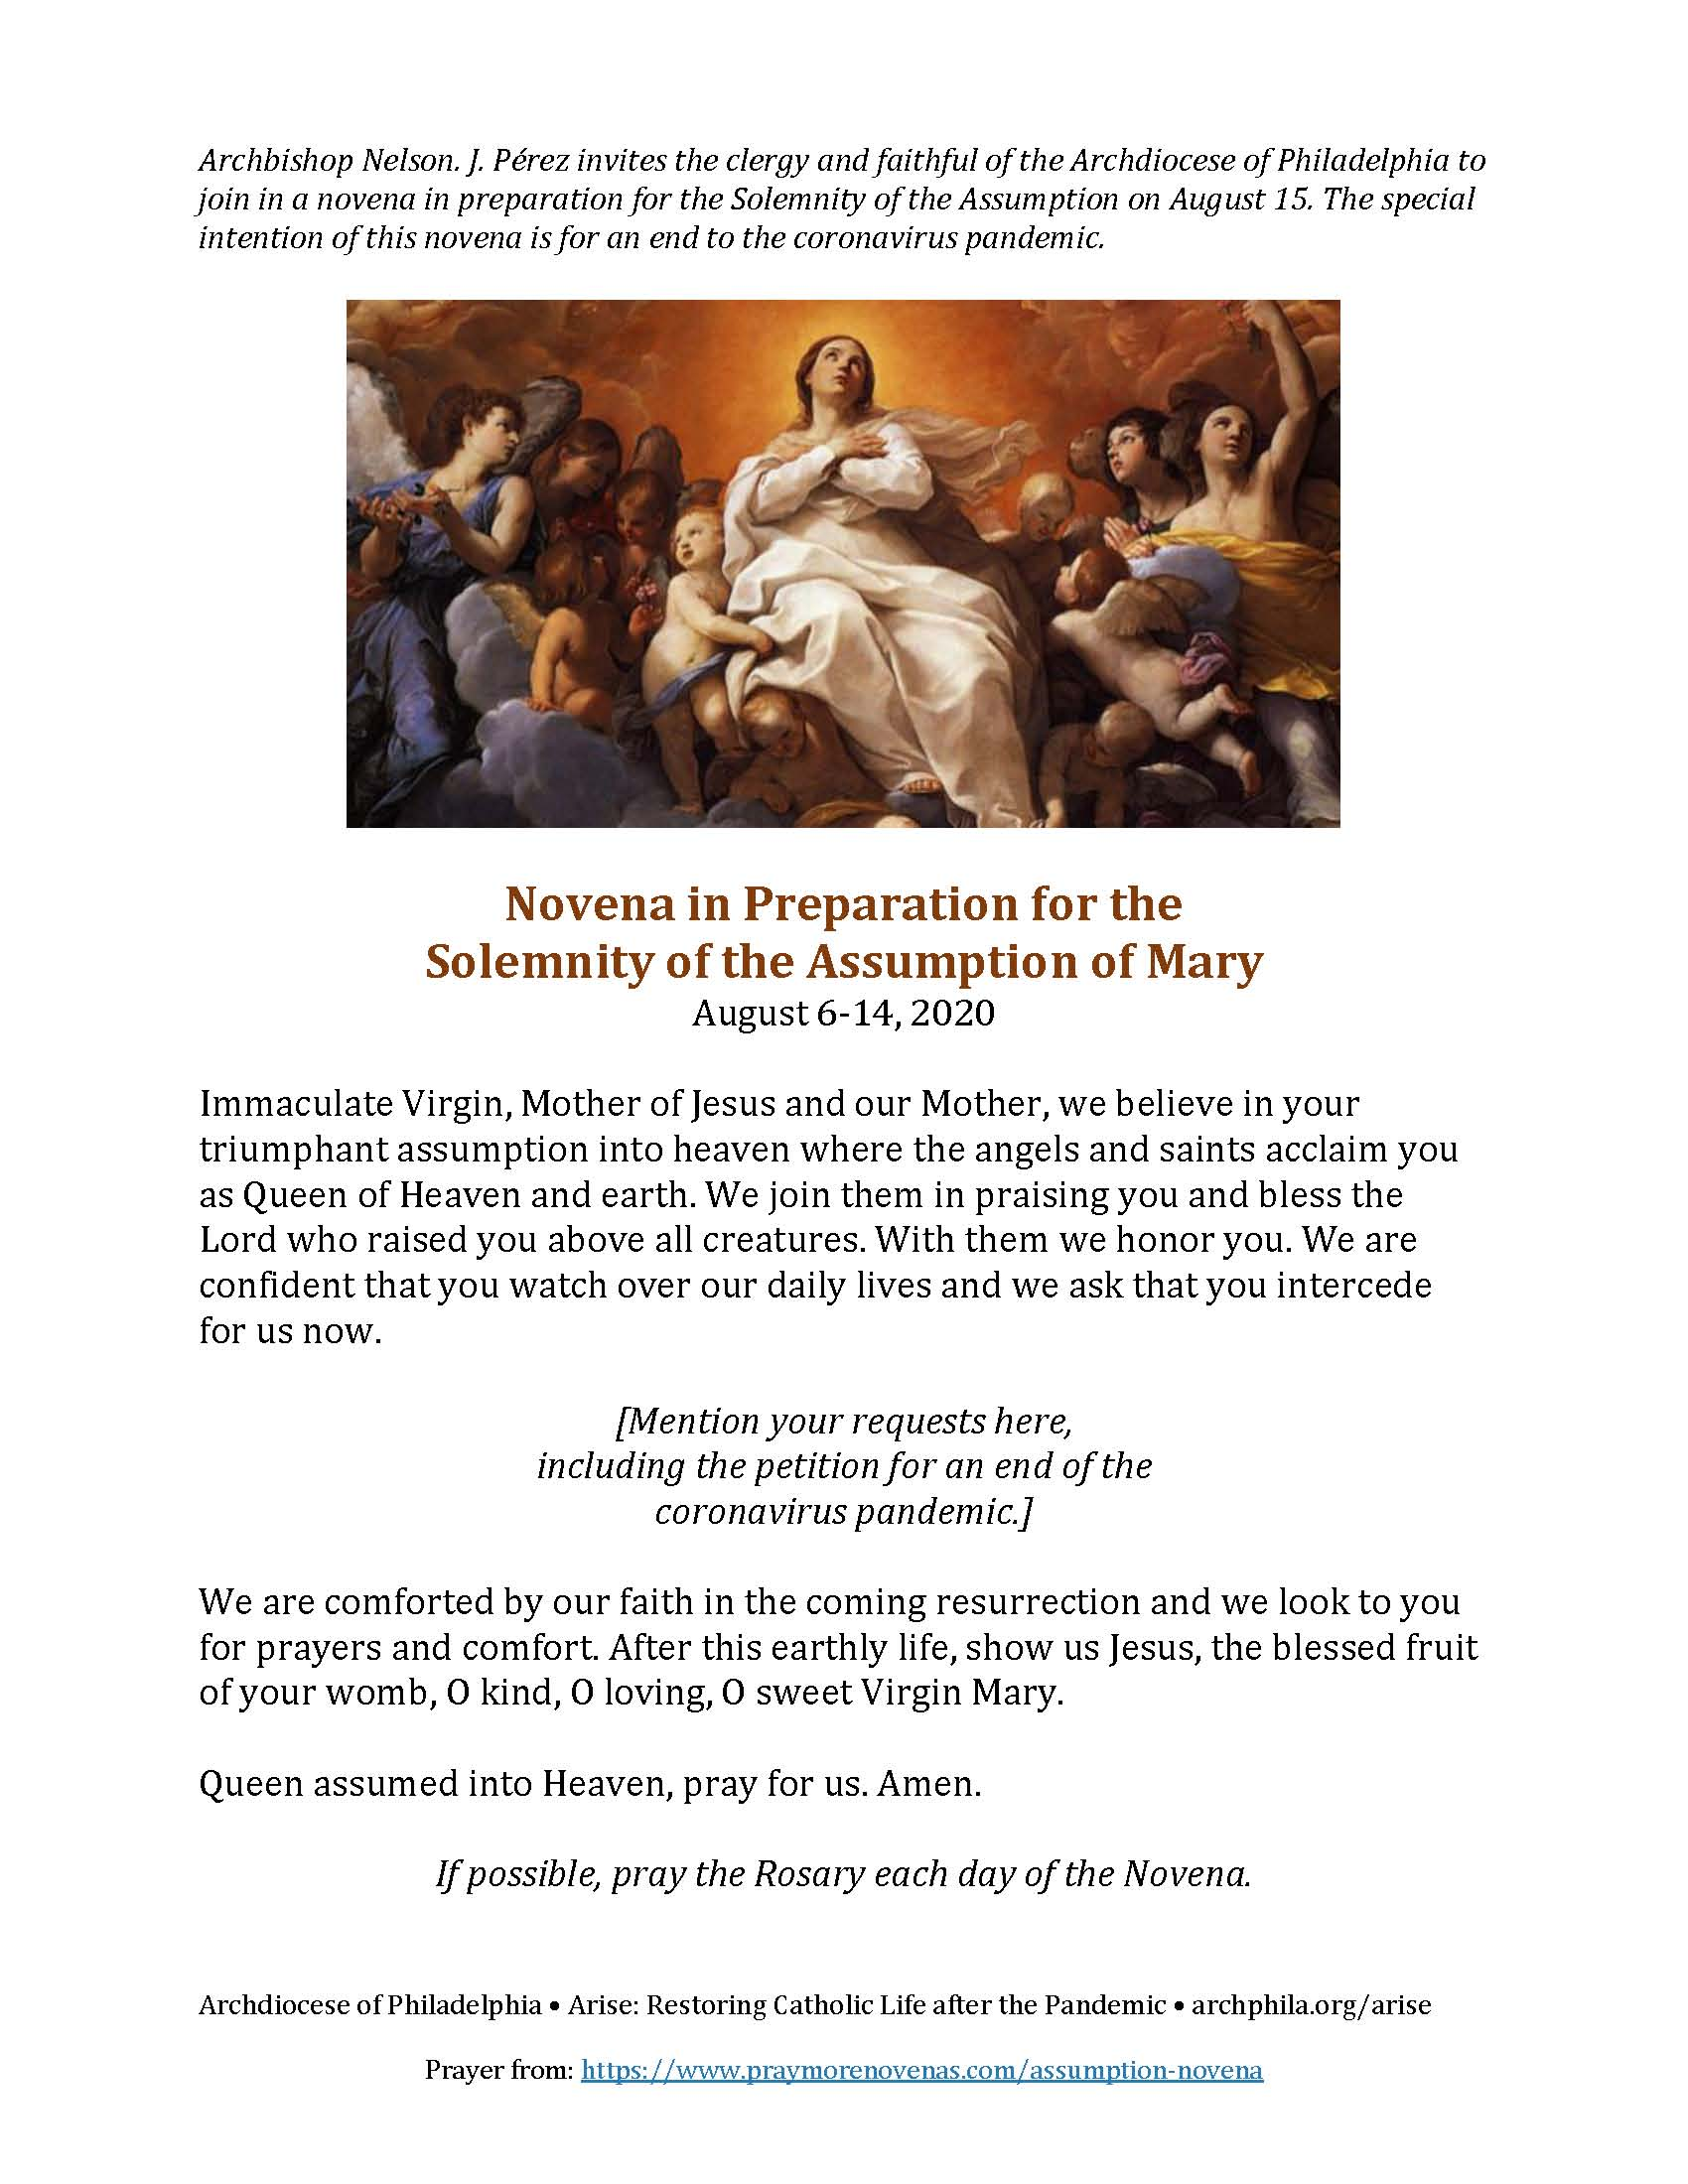 Assumption-Novena-English